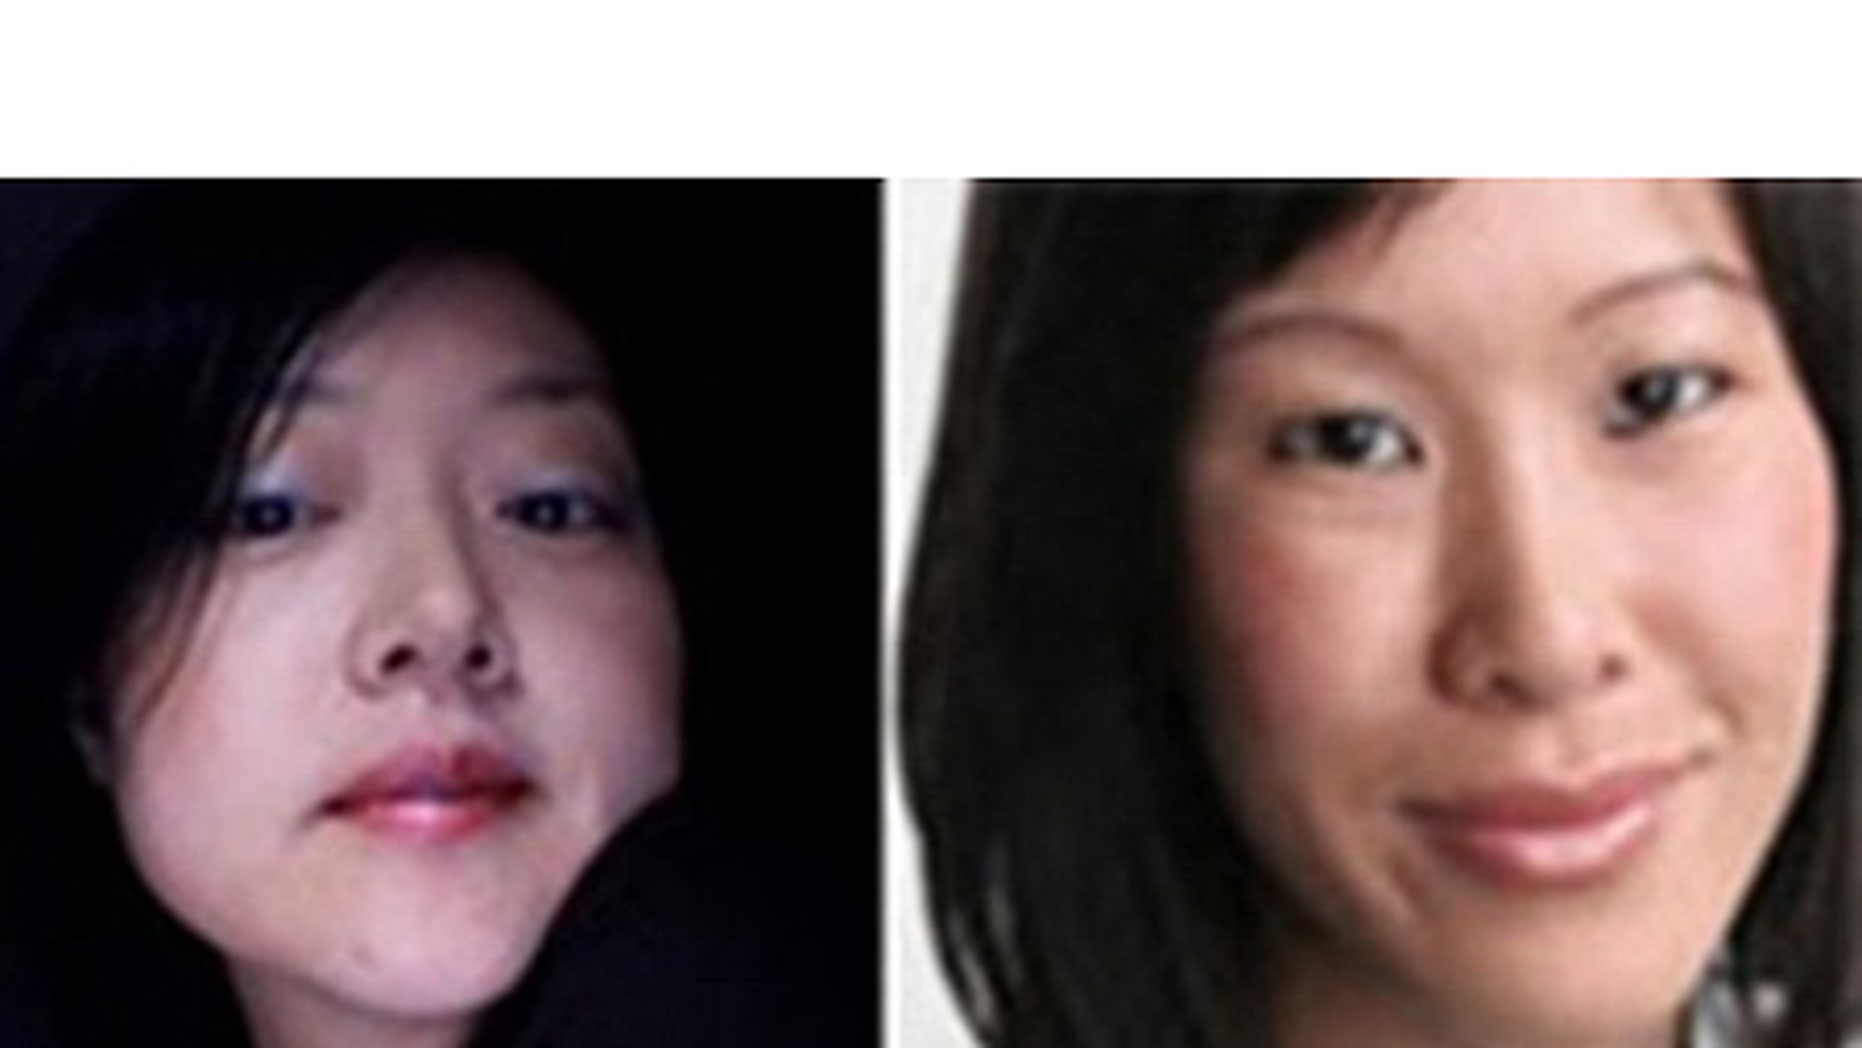 American journalists Euna Lee, left, and Laura Ling are seen in this undated image released by Yonhap news agency in Seoul.